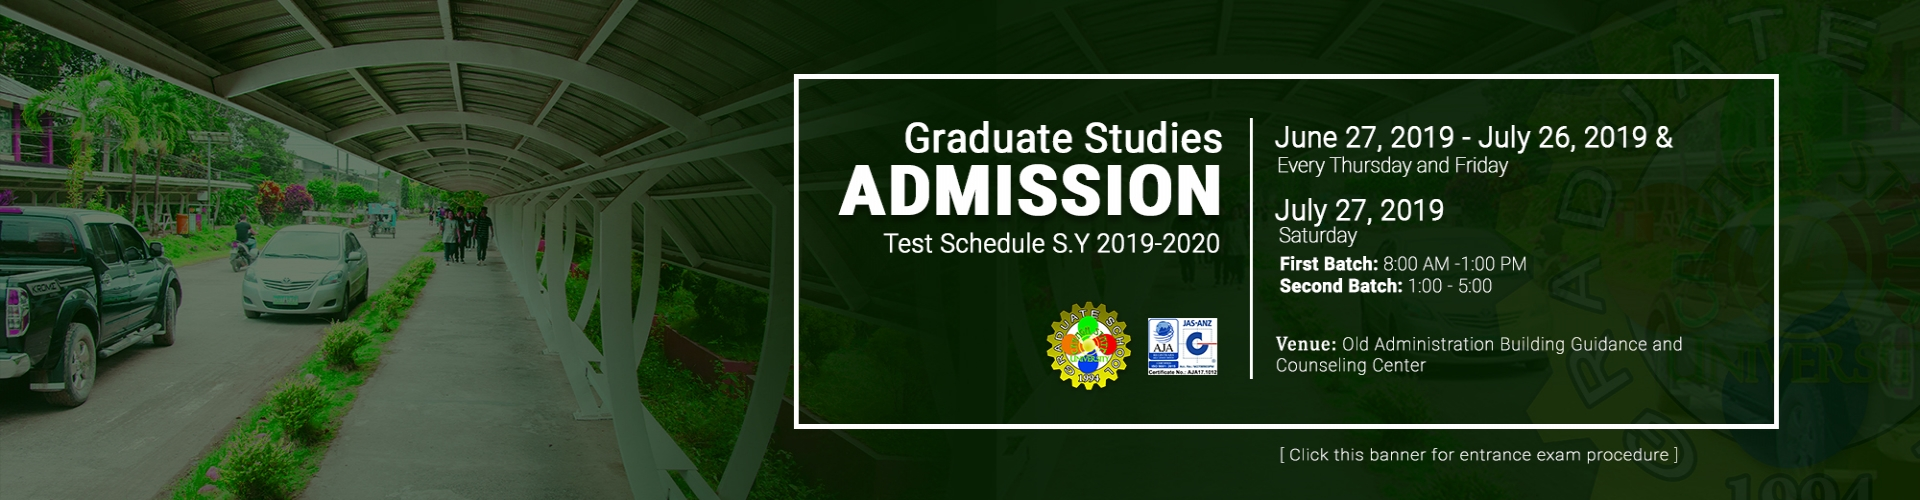 Graduate School Admission Test Schedule